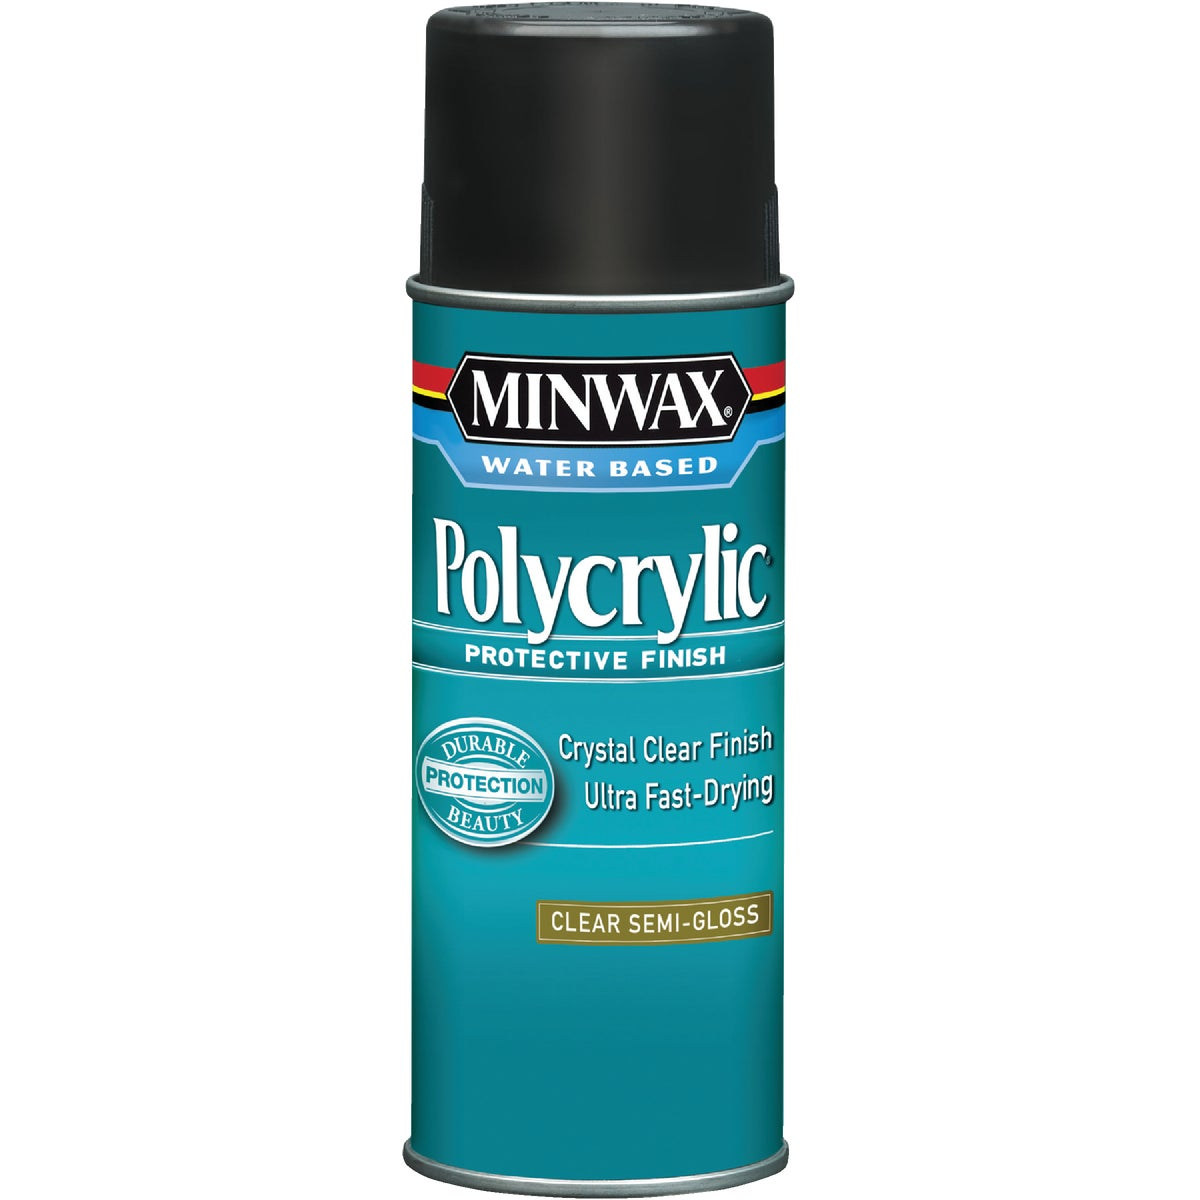 W/B S/G SPRAY POLYCRYLIC